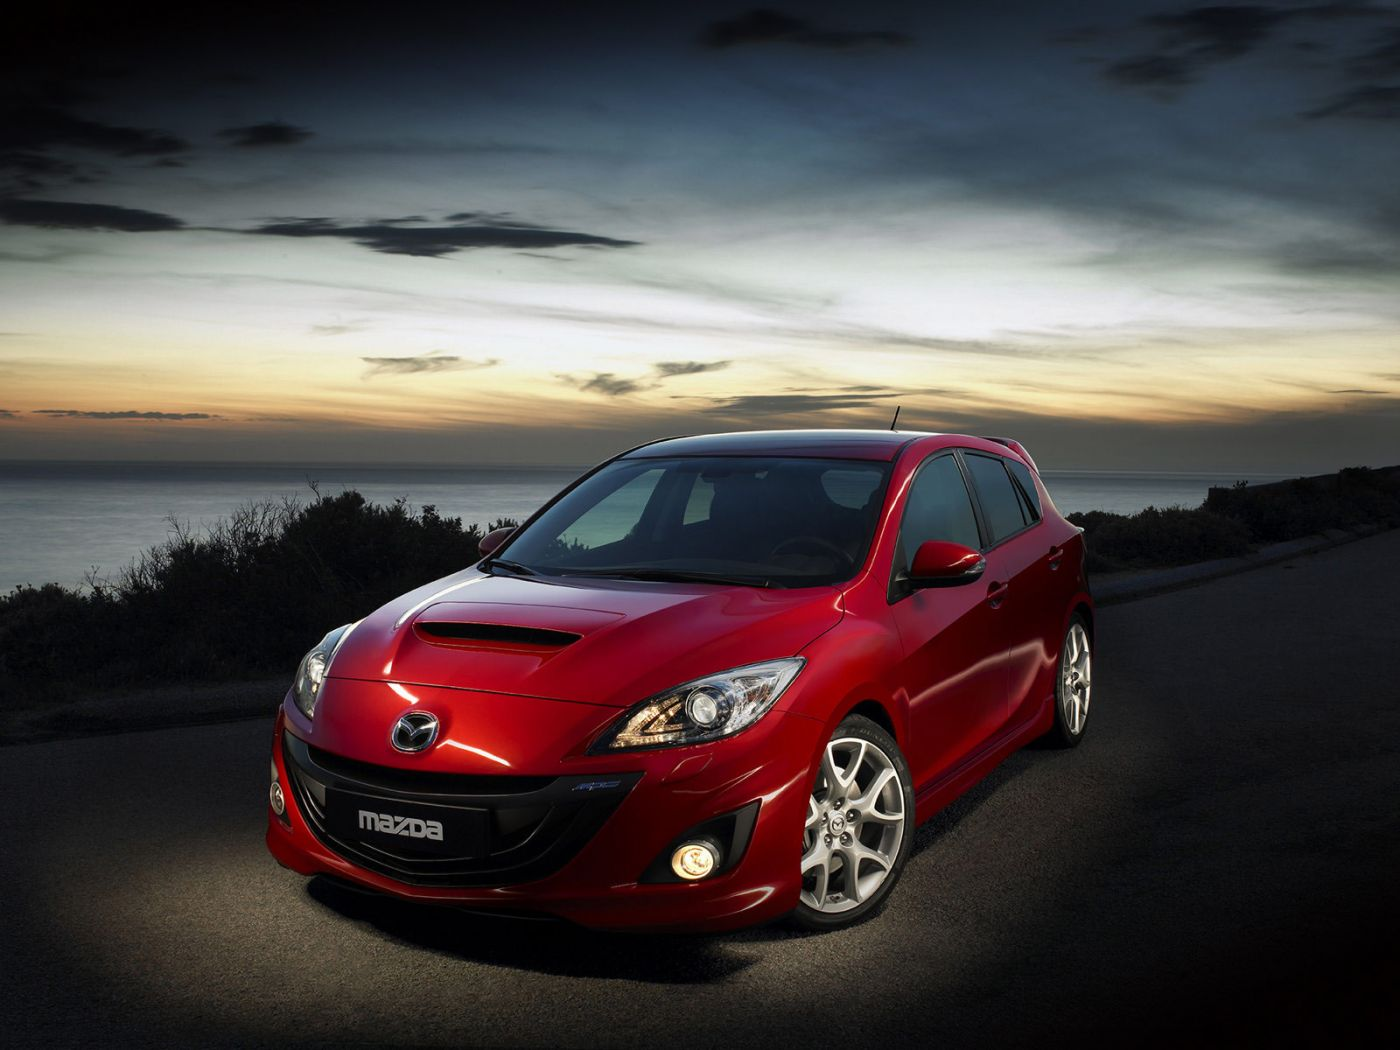 Mazda 3 Mps Red Front Side High Angle Wallpaper 1400x1050